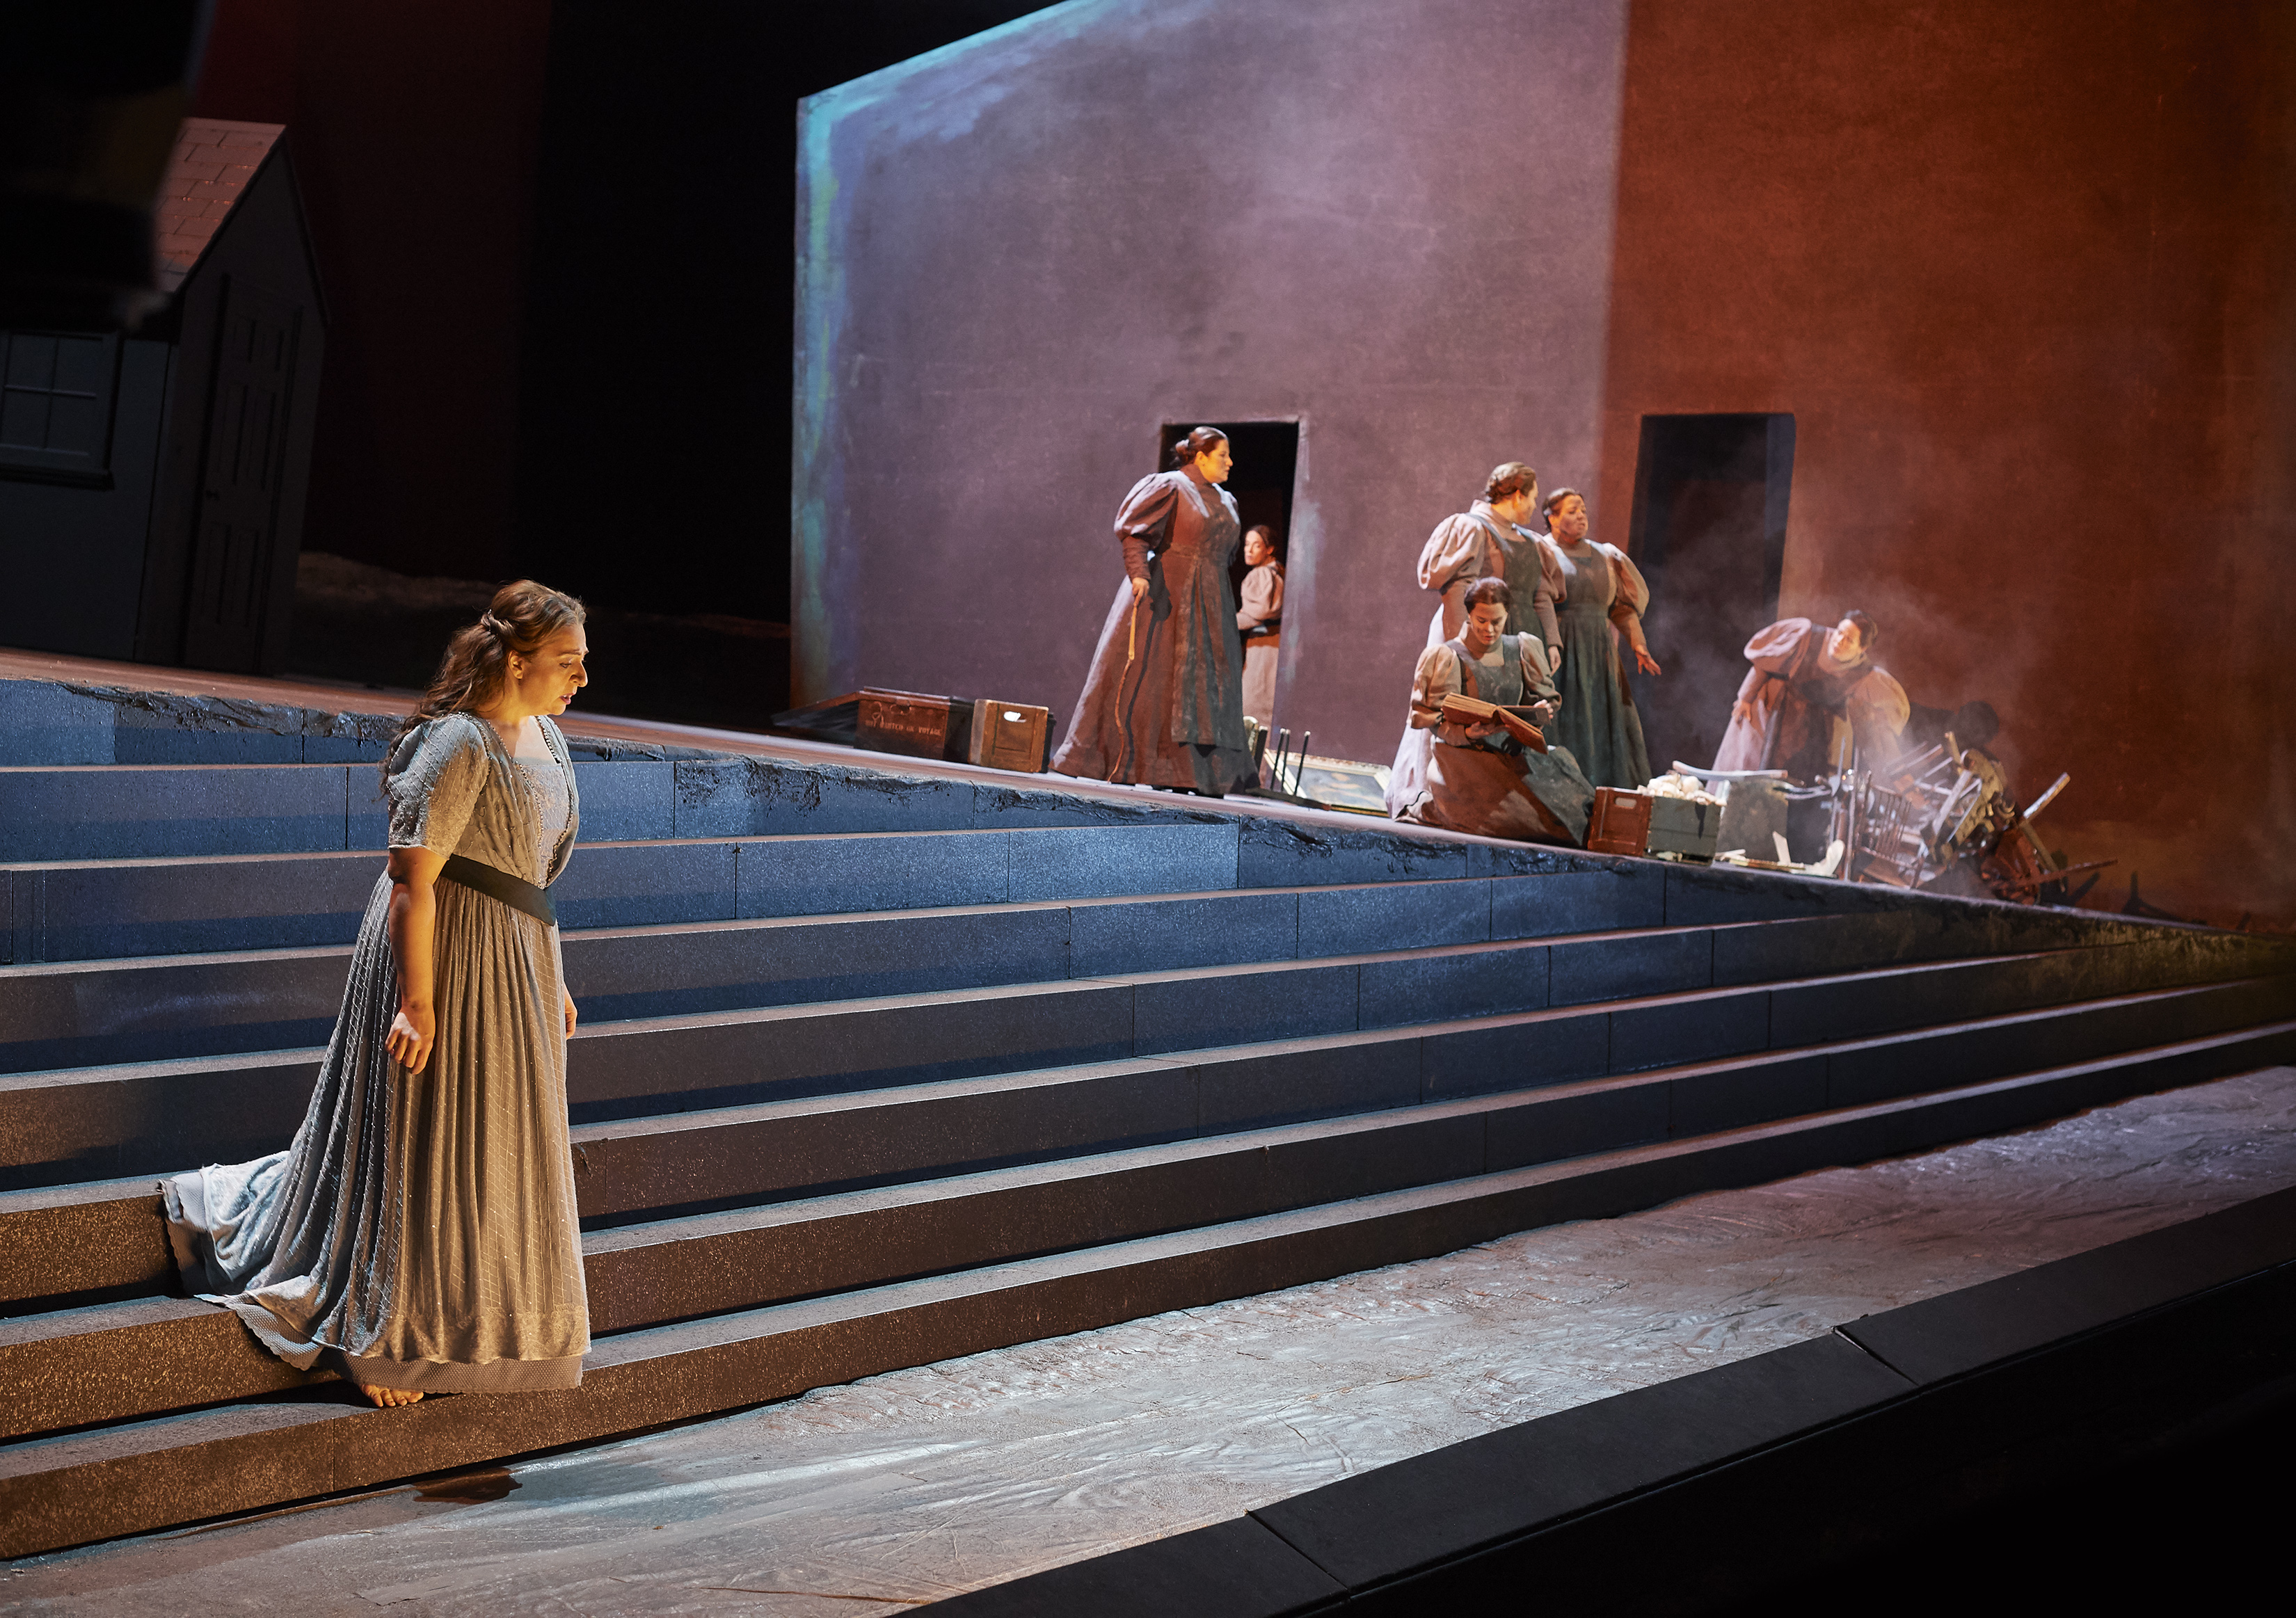 Christine Goerke as Elektra (at left) in a scene from the Canadian Opera Company's production of Elektra, 2019. Conductor Johannes Debus, director James Robinson, associate director Omer Ben Seadia, set designer Derek McLane, costume designer Anita Stewart, and lighting designer Mimi Jordan Sherin. Photo: Michael Cooper